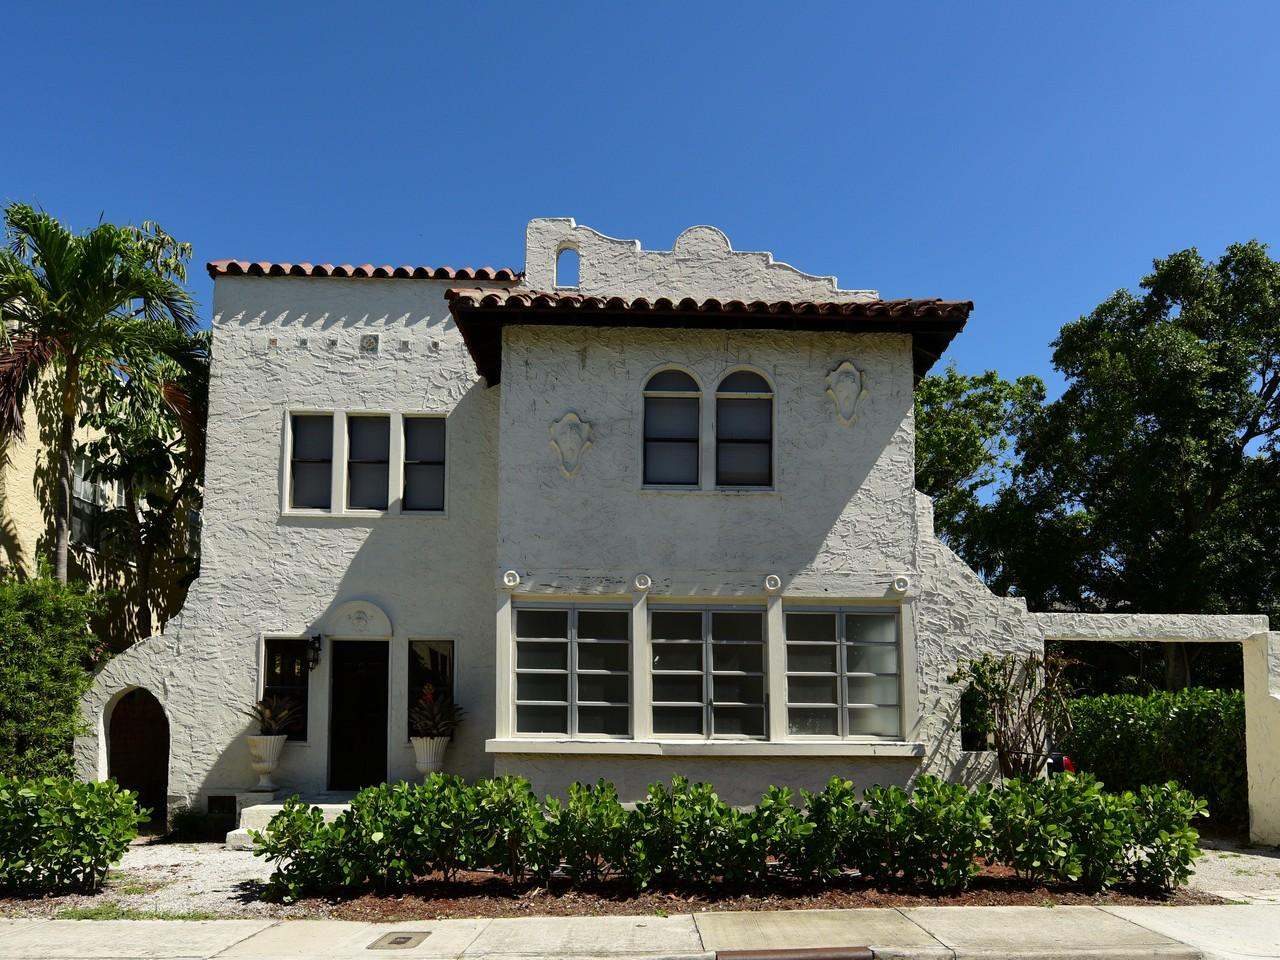 New Home for sale at 251 Park Avenue in Palm Beach